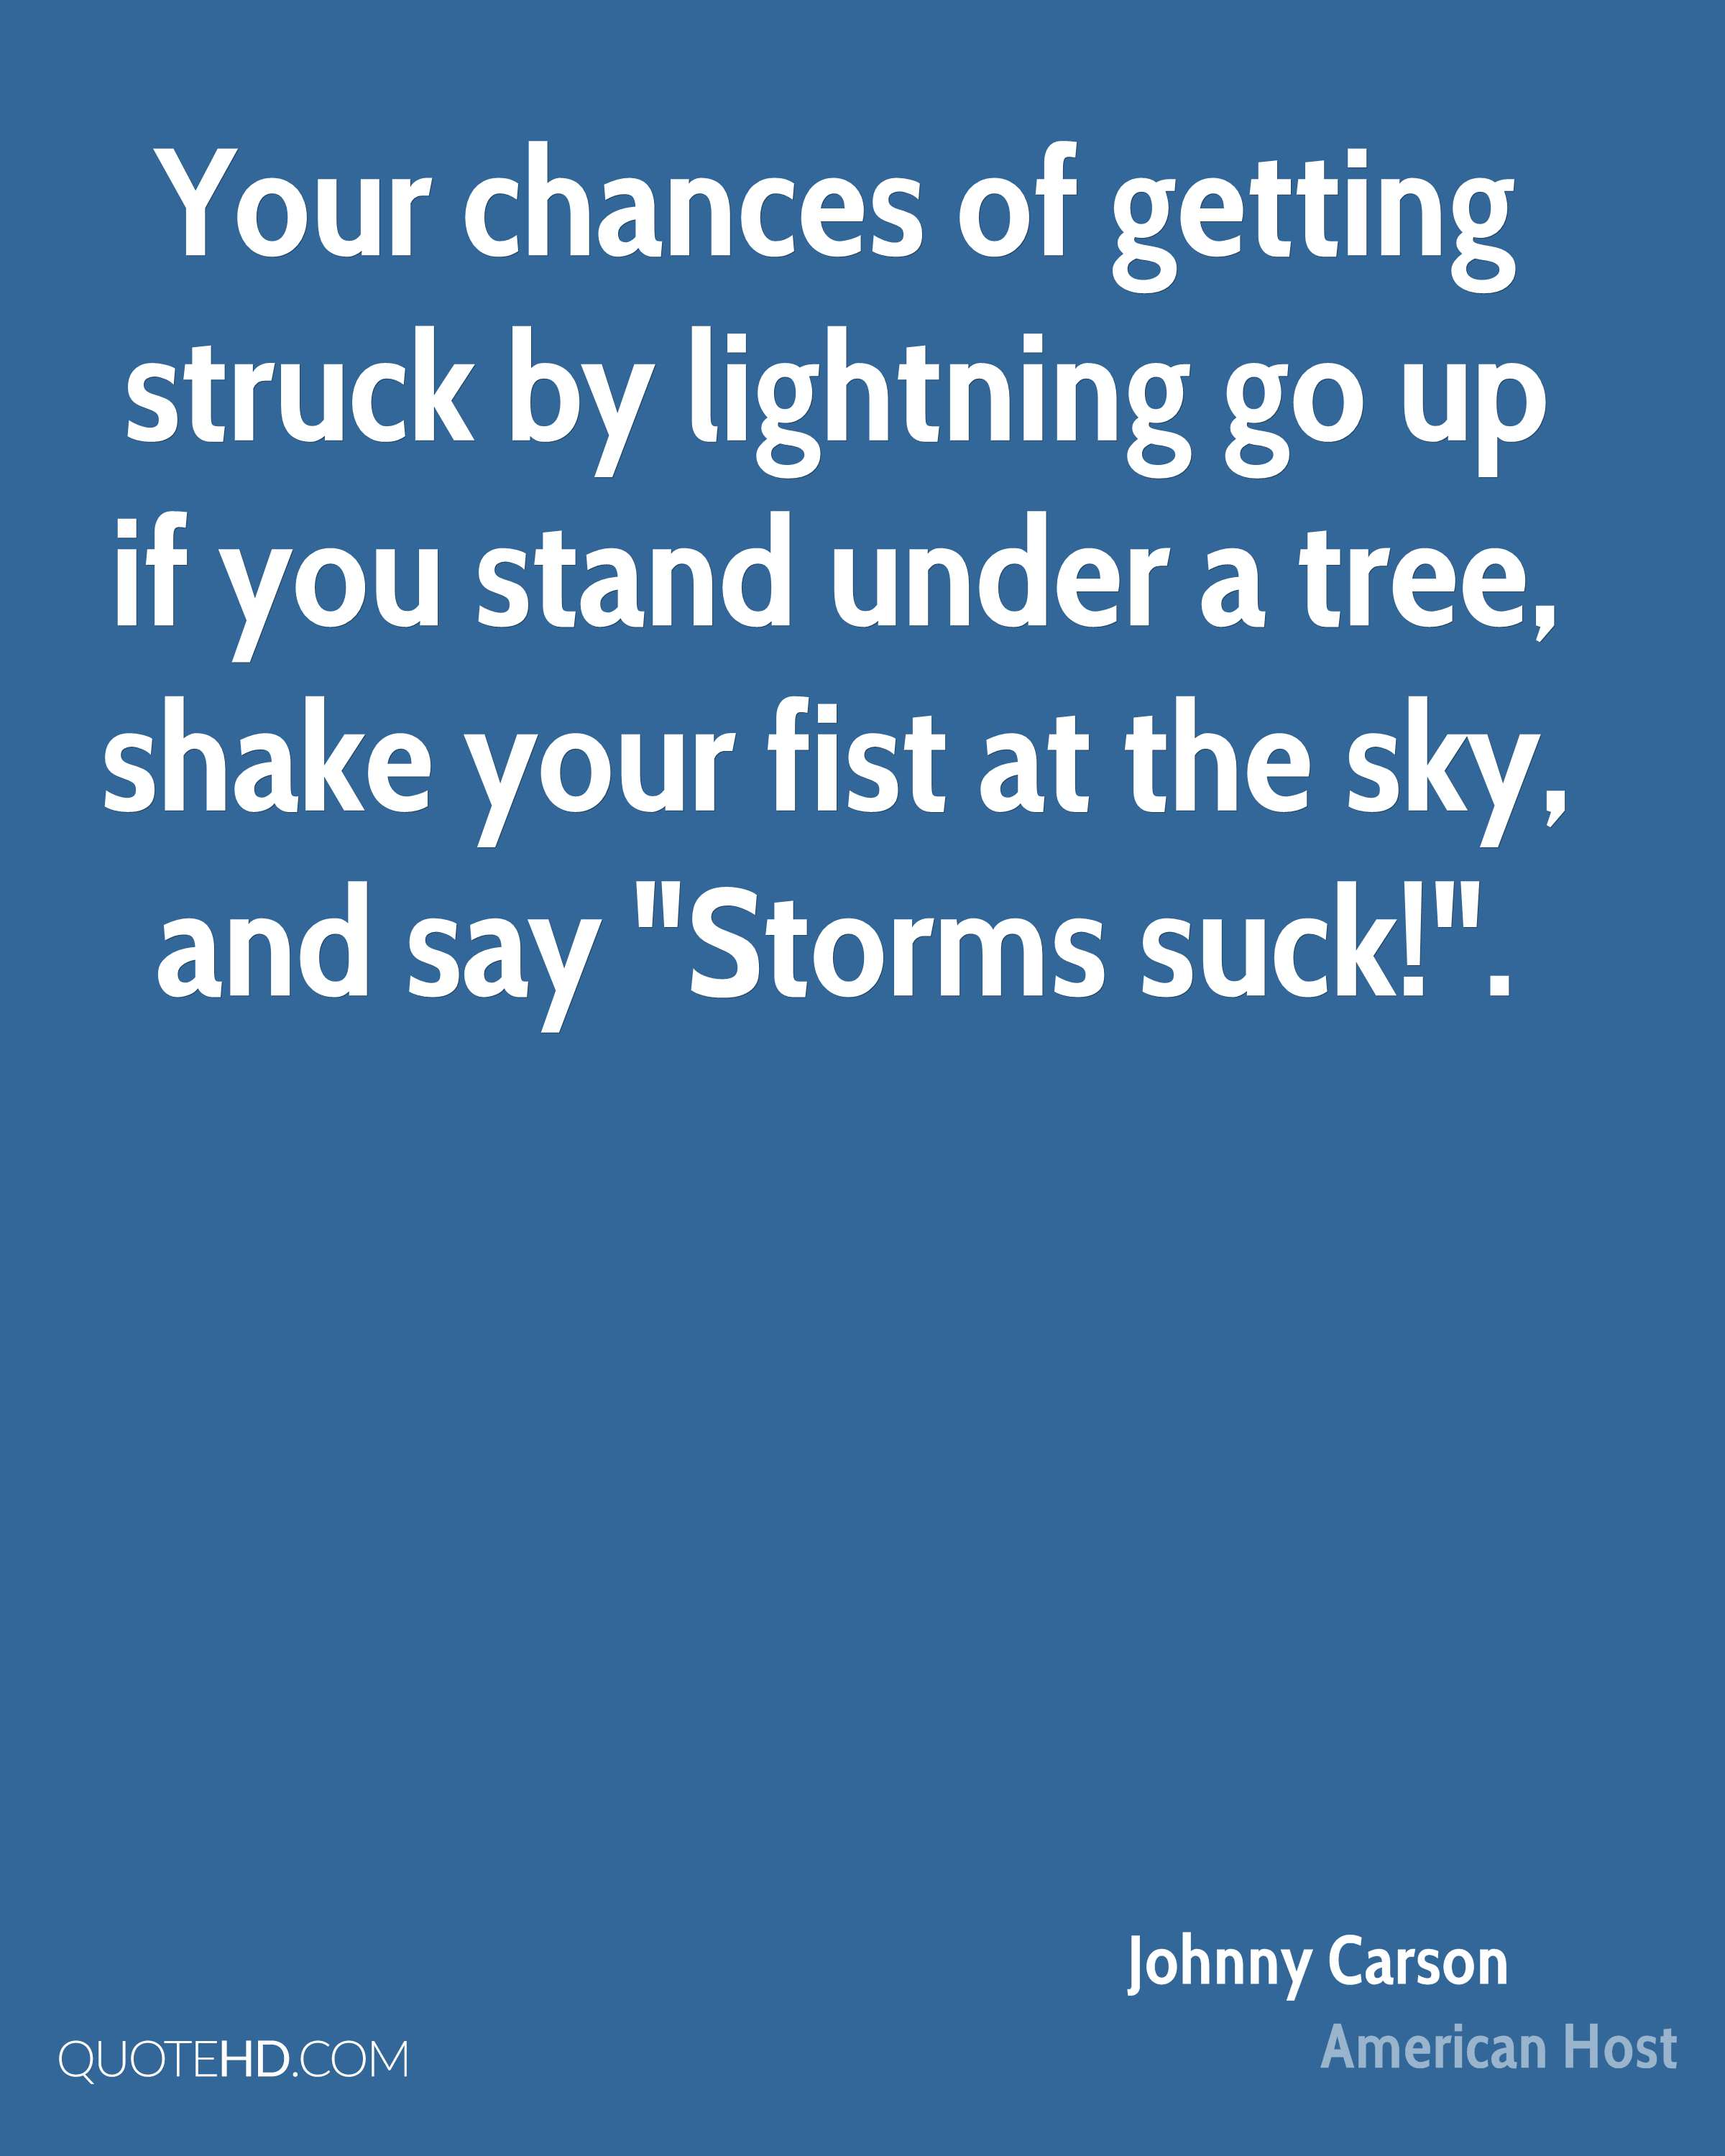 """Your chances of getting struck by lightning go up if you stand under a tree, shake your fist at the sky, and say """"Storms suck!""""."""